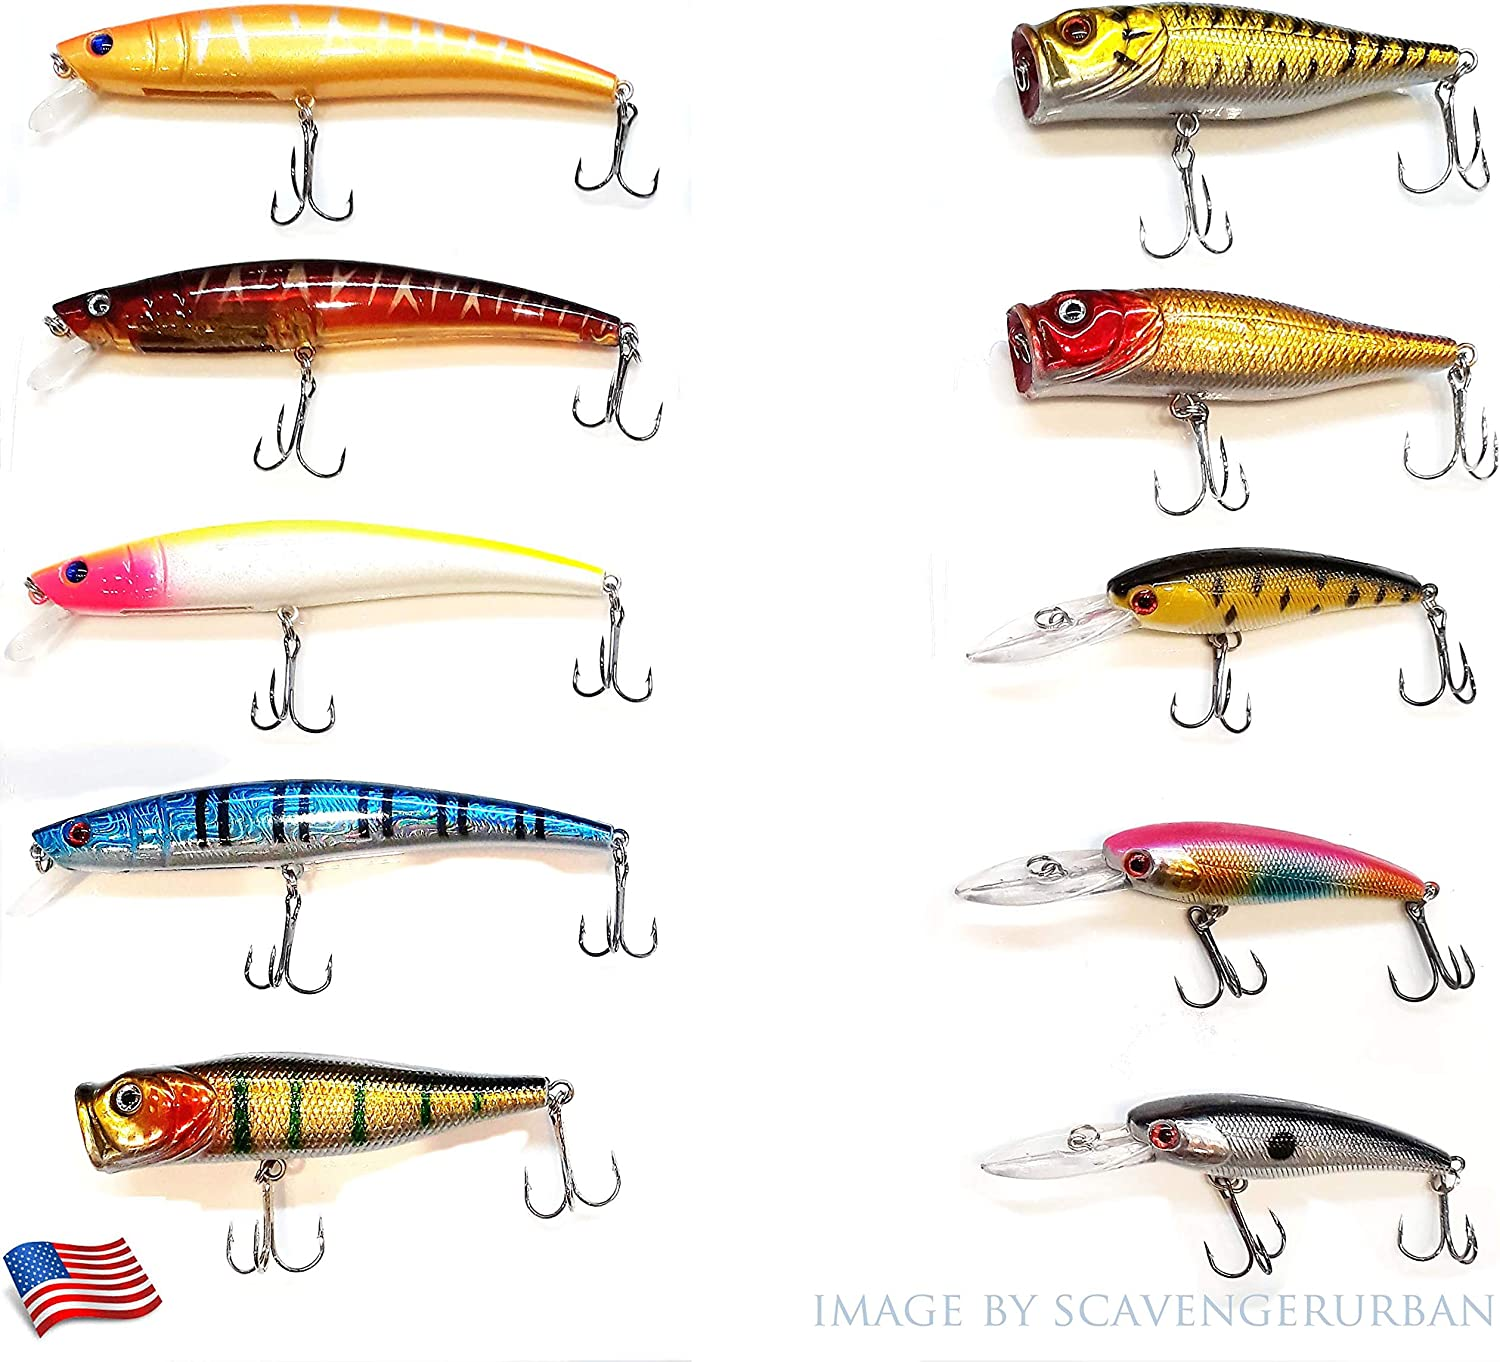 10 Hard Bait Minnow Lure With Treble Hook Life Like Swimbait Fishing Bait 3d Fishing Eyes Topwater Popper Crankbait Vibe Sinking Lure For Bass Trout Walleye Freshwater Sports Outdoors Amazon Com